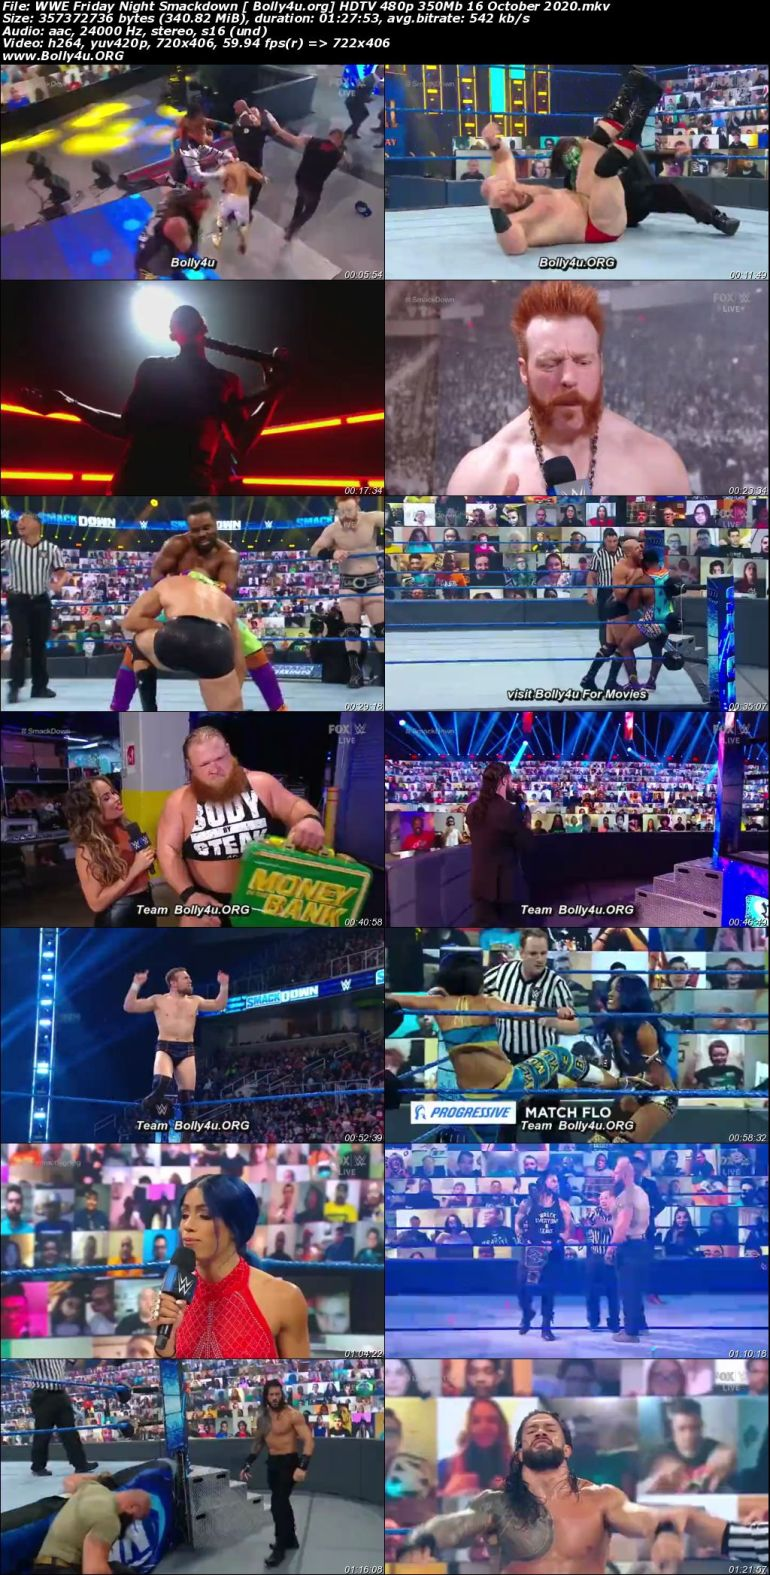 WWE Friday Night Smackdown HDTV 480p 350Mb 16 October 2020 Download